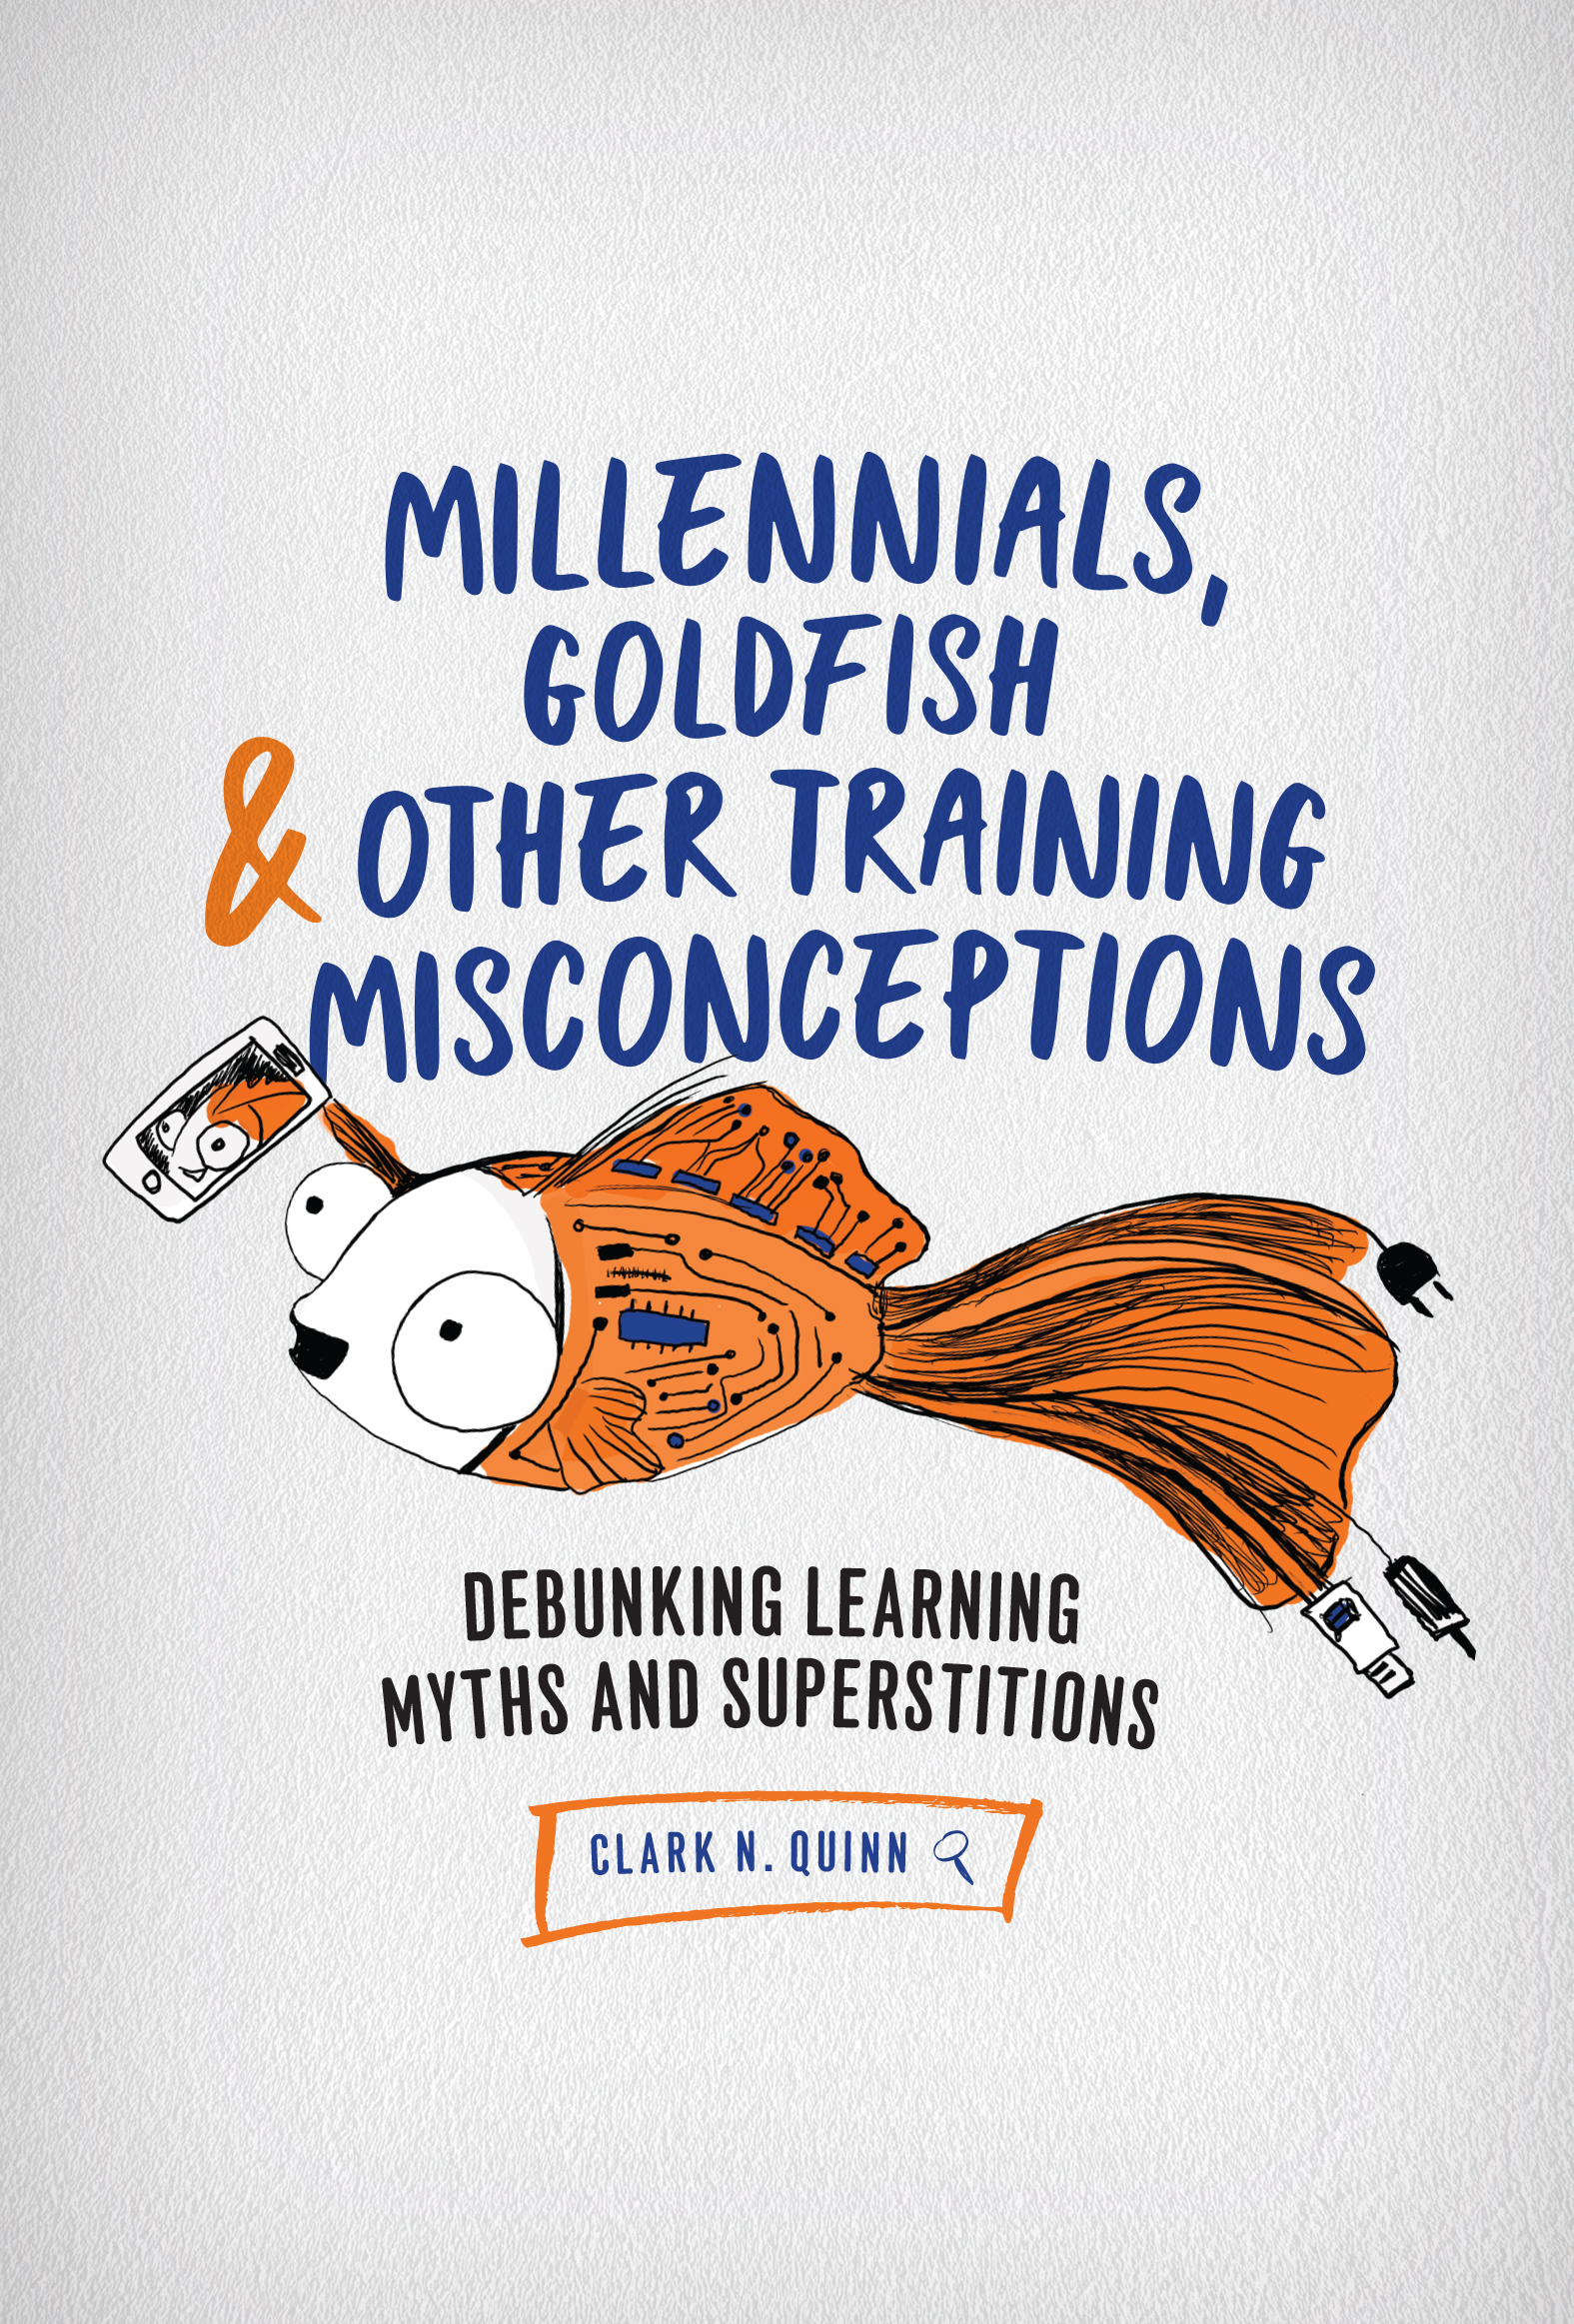 The Myth Of Learning Styles Debunked >> Millennials Goldfish Other Training Misconceptions